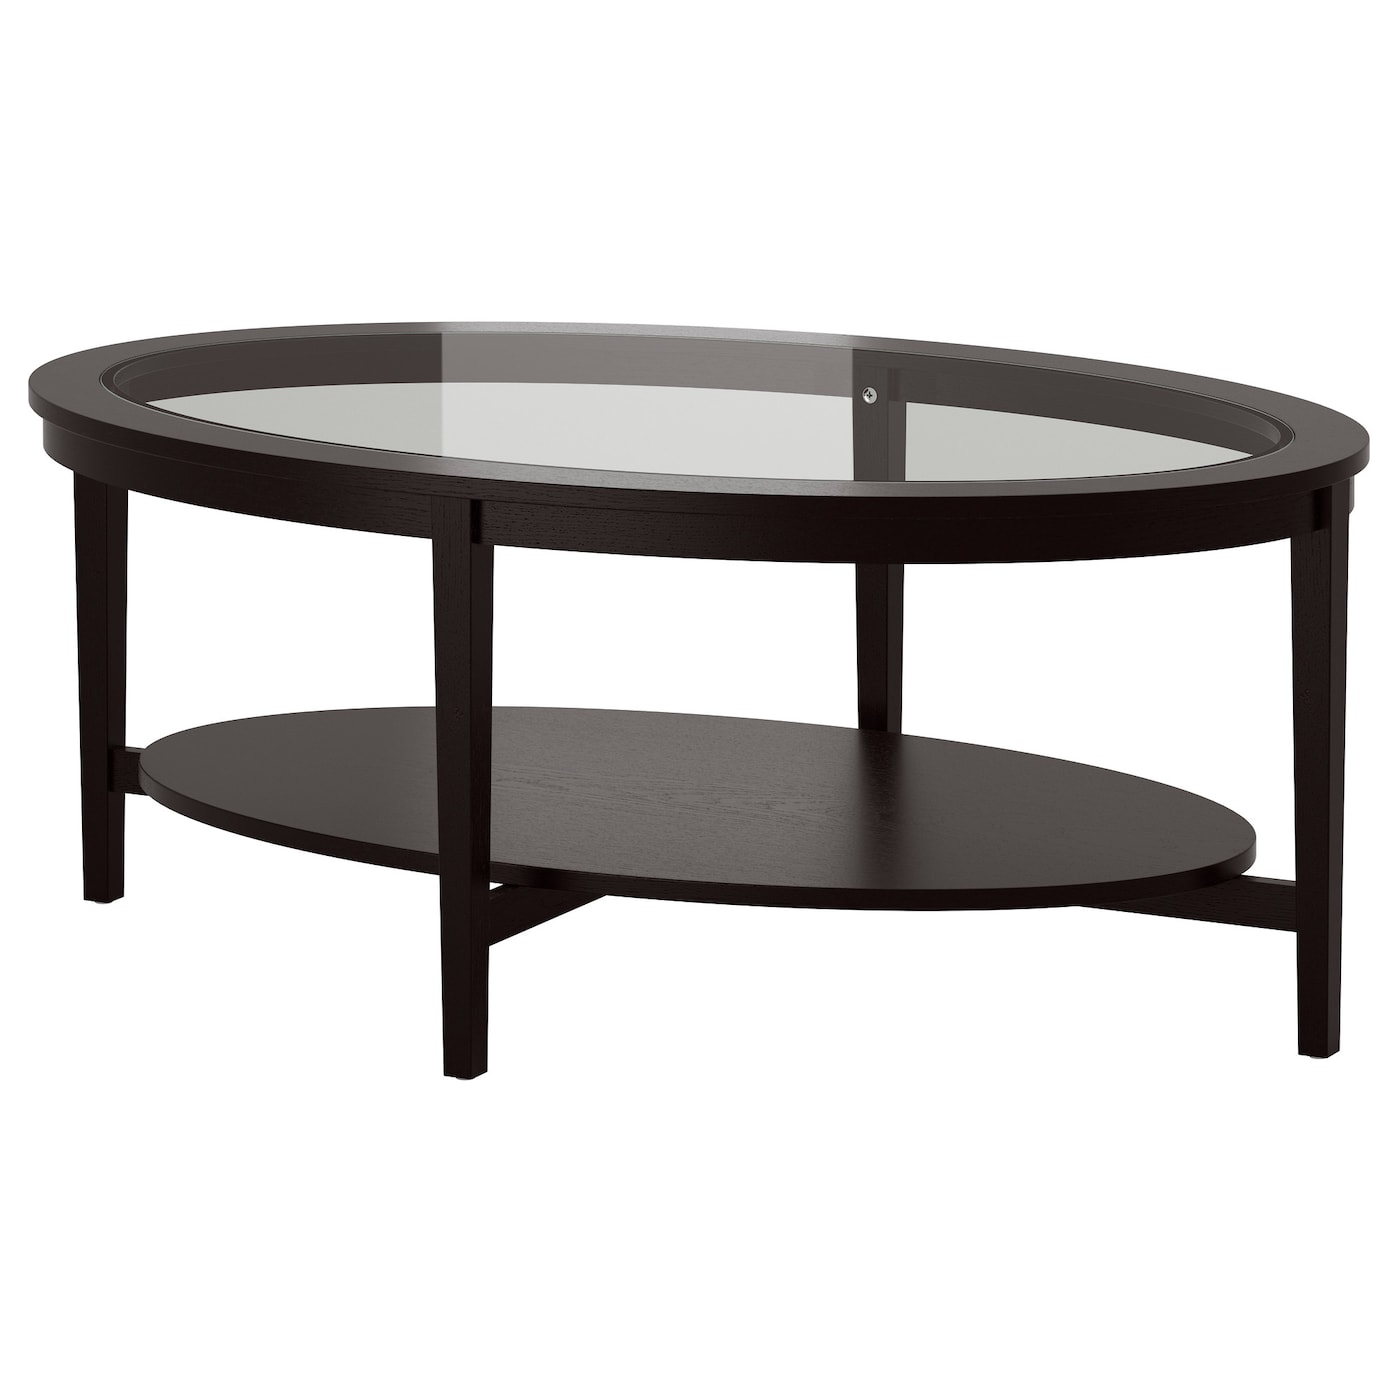 Malmsta coffee table black brown 130x80 cm ikea for Table de fusion ikea